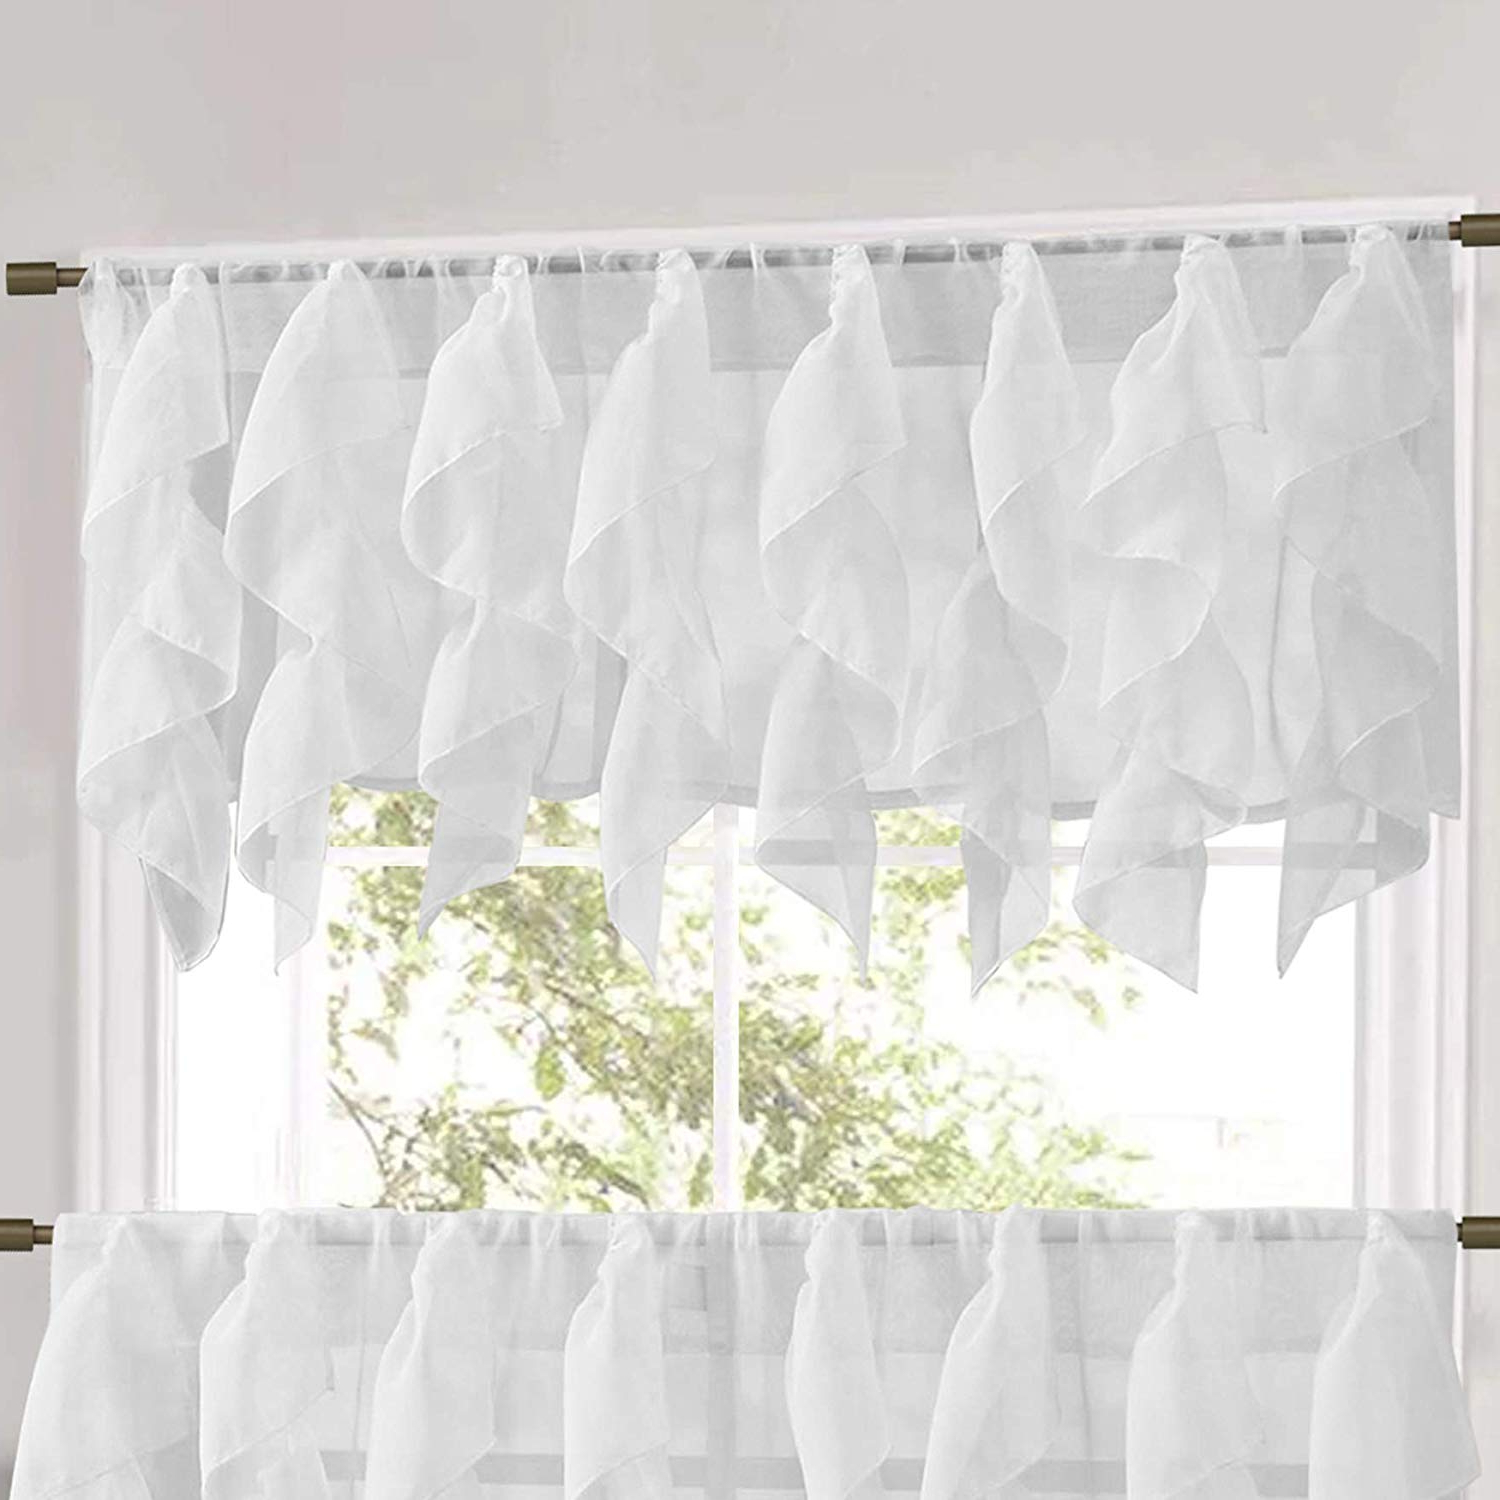 """Vertical Ruffled Waterfall Valance And Curtain Tiers With Most Recent Sweet Home Collection Veritcal Kitchen Curtain Sheer Cascading Ruffle Waterfall Window Treatment Choice Of Valance, 24"""" Or 36"""" Teir, And Kit, White (View 15 of 20)"""